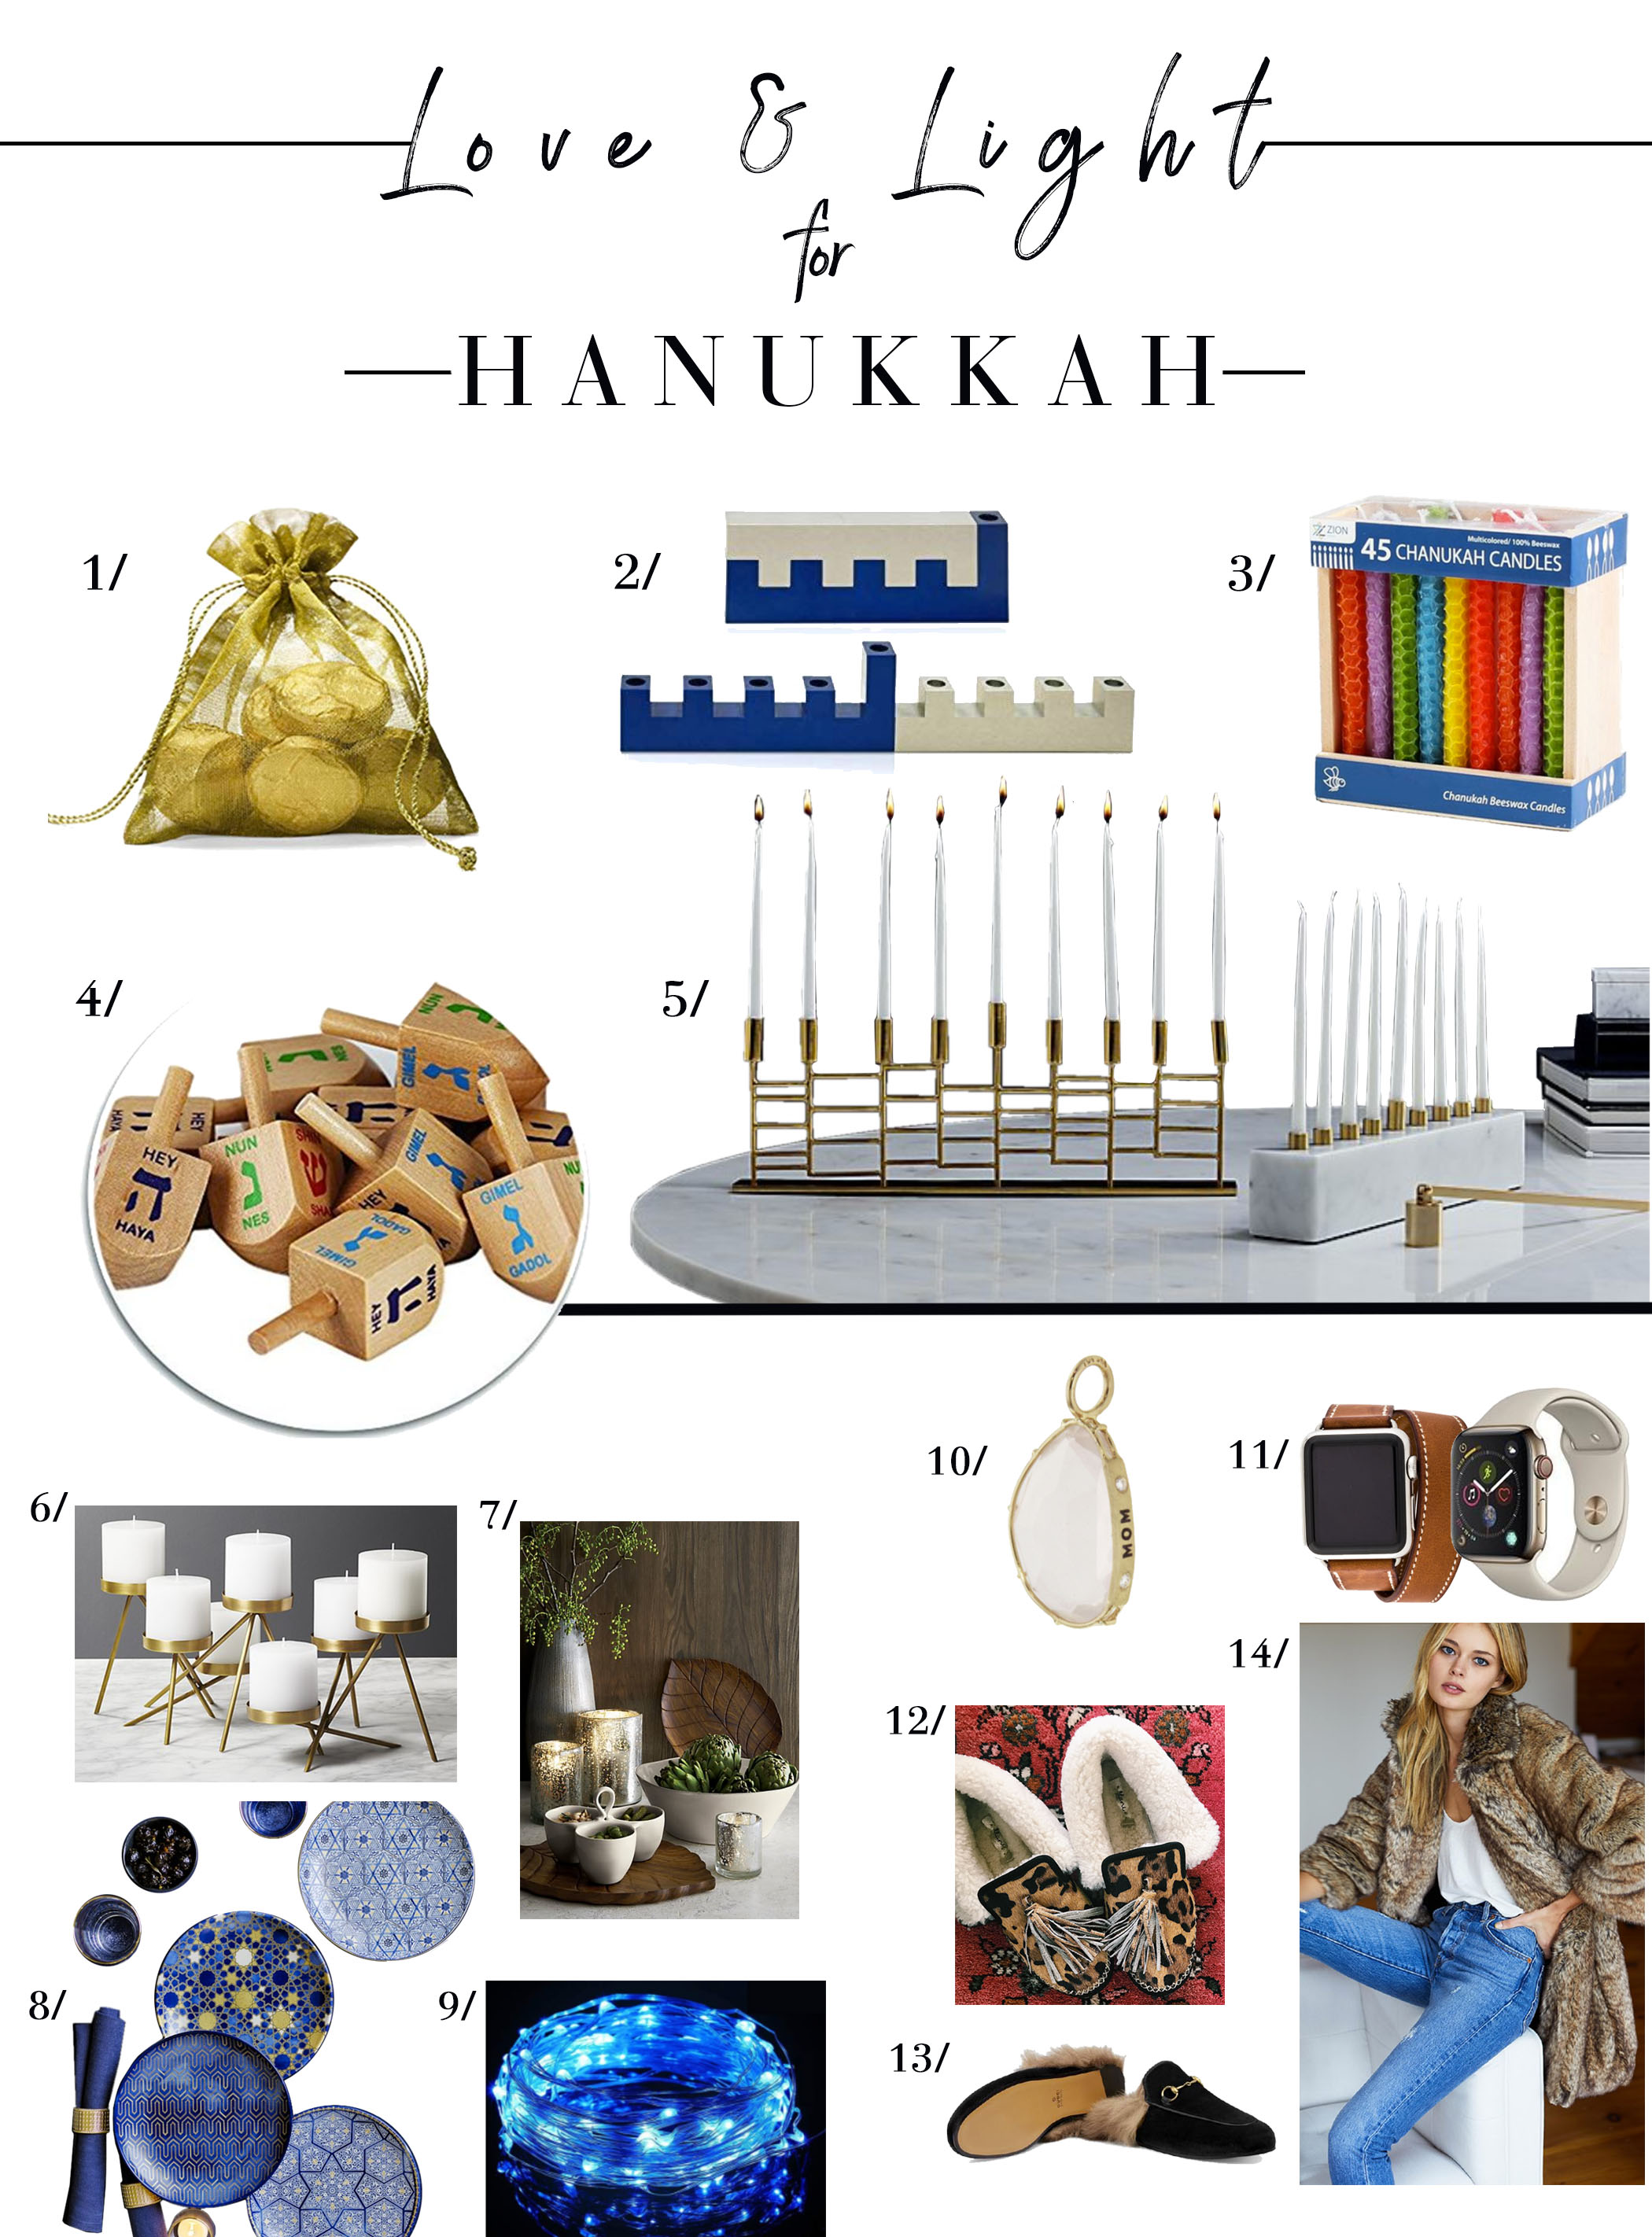 A house lit in blue can be super-fun...Hanukkah food is delish & Dreidel never gets old. It's time to light candles, share a meal & make wishes. Here's how.